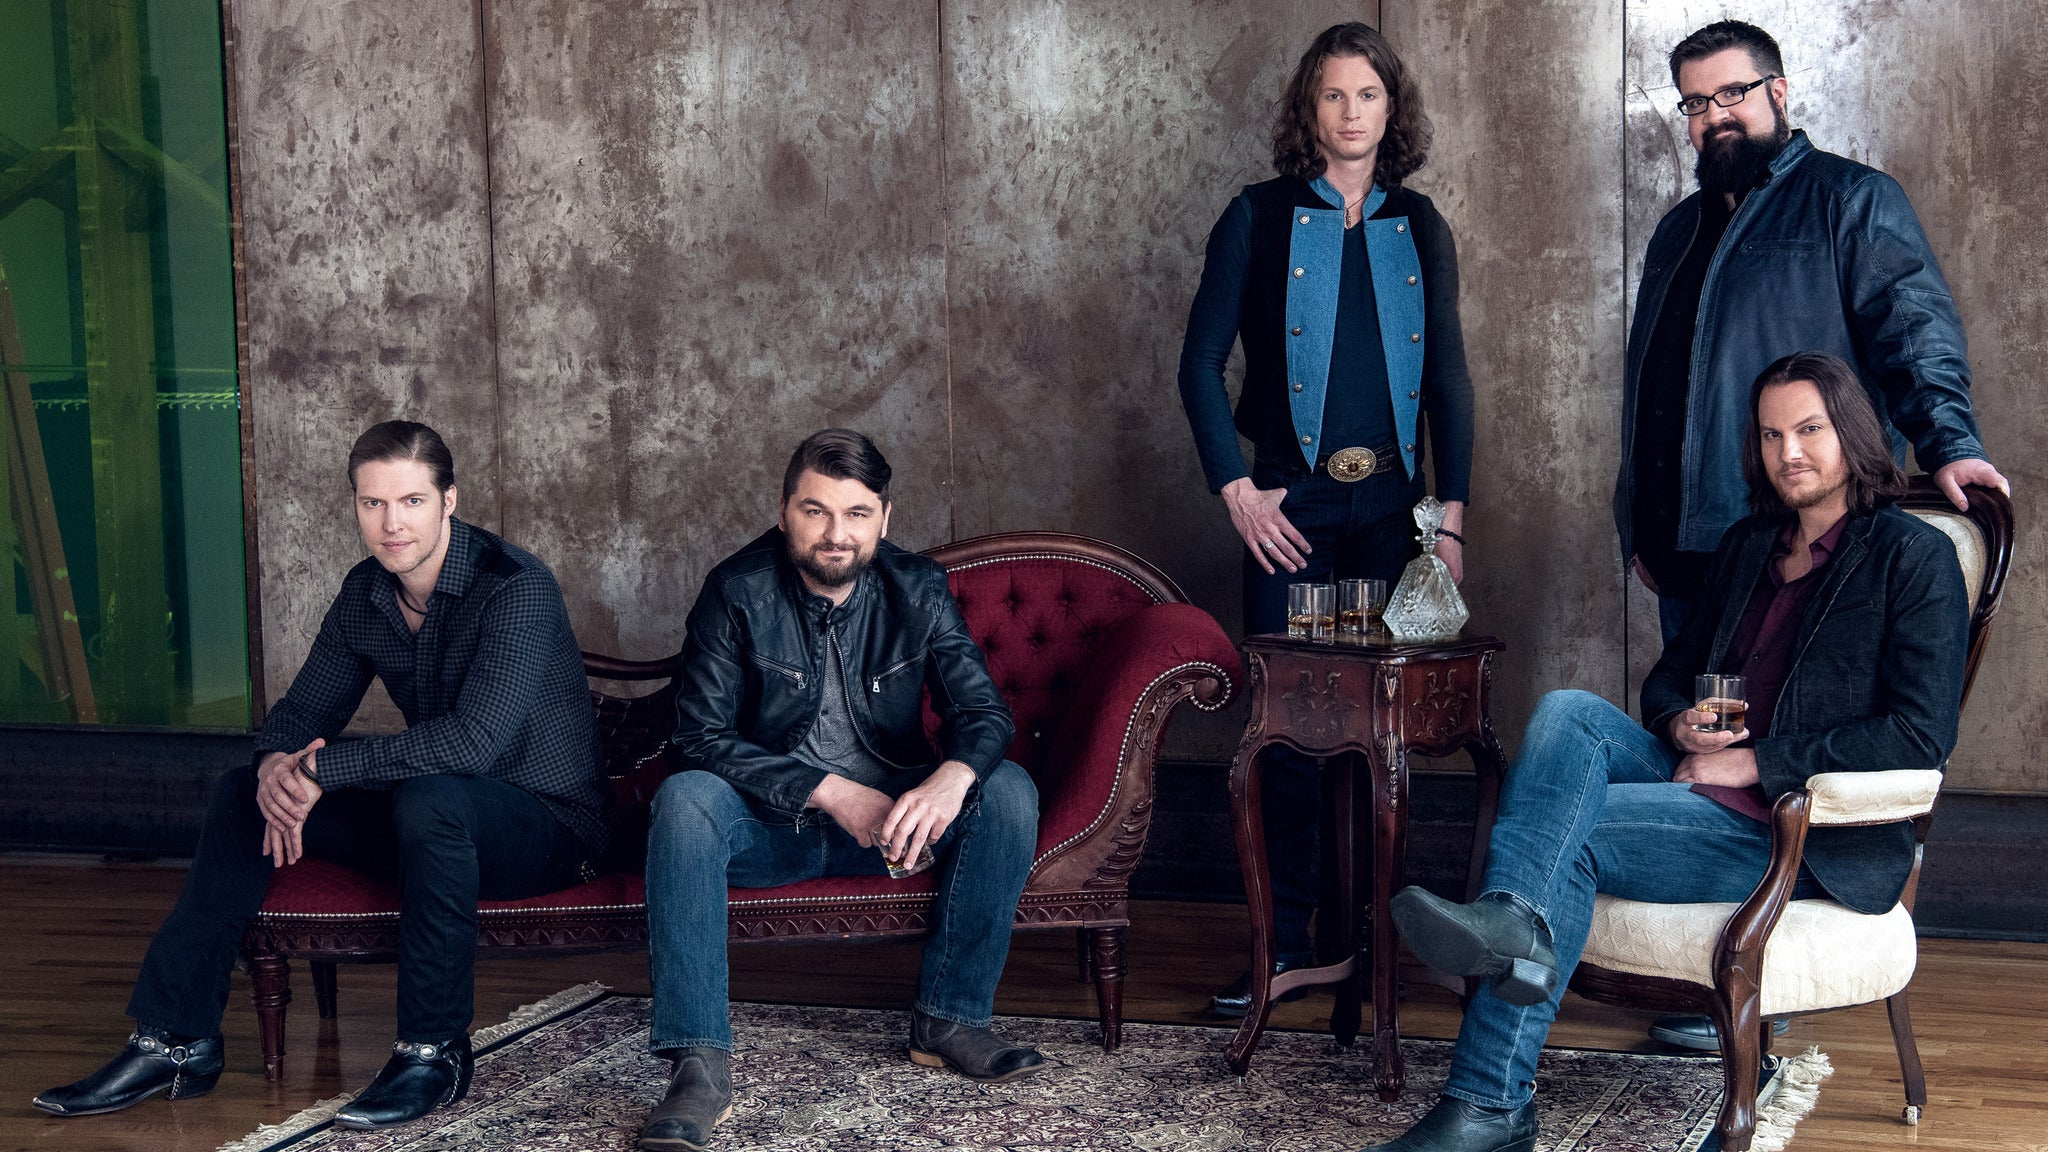 Home Free at Reynolds Performance Hall